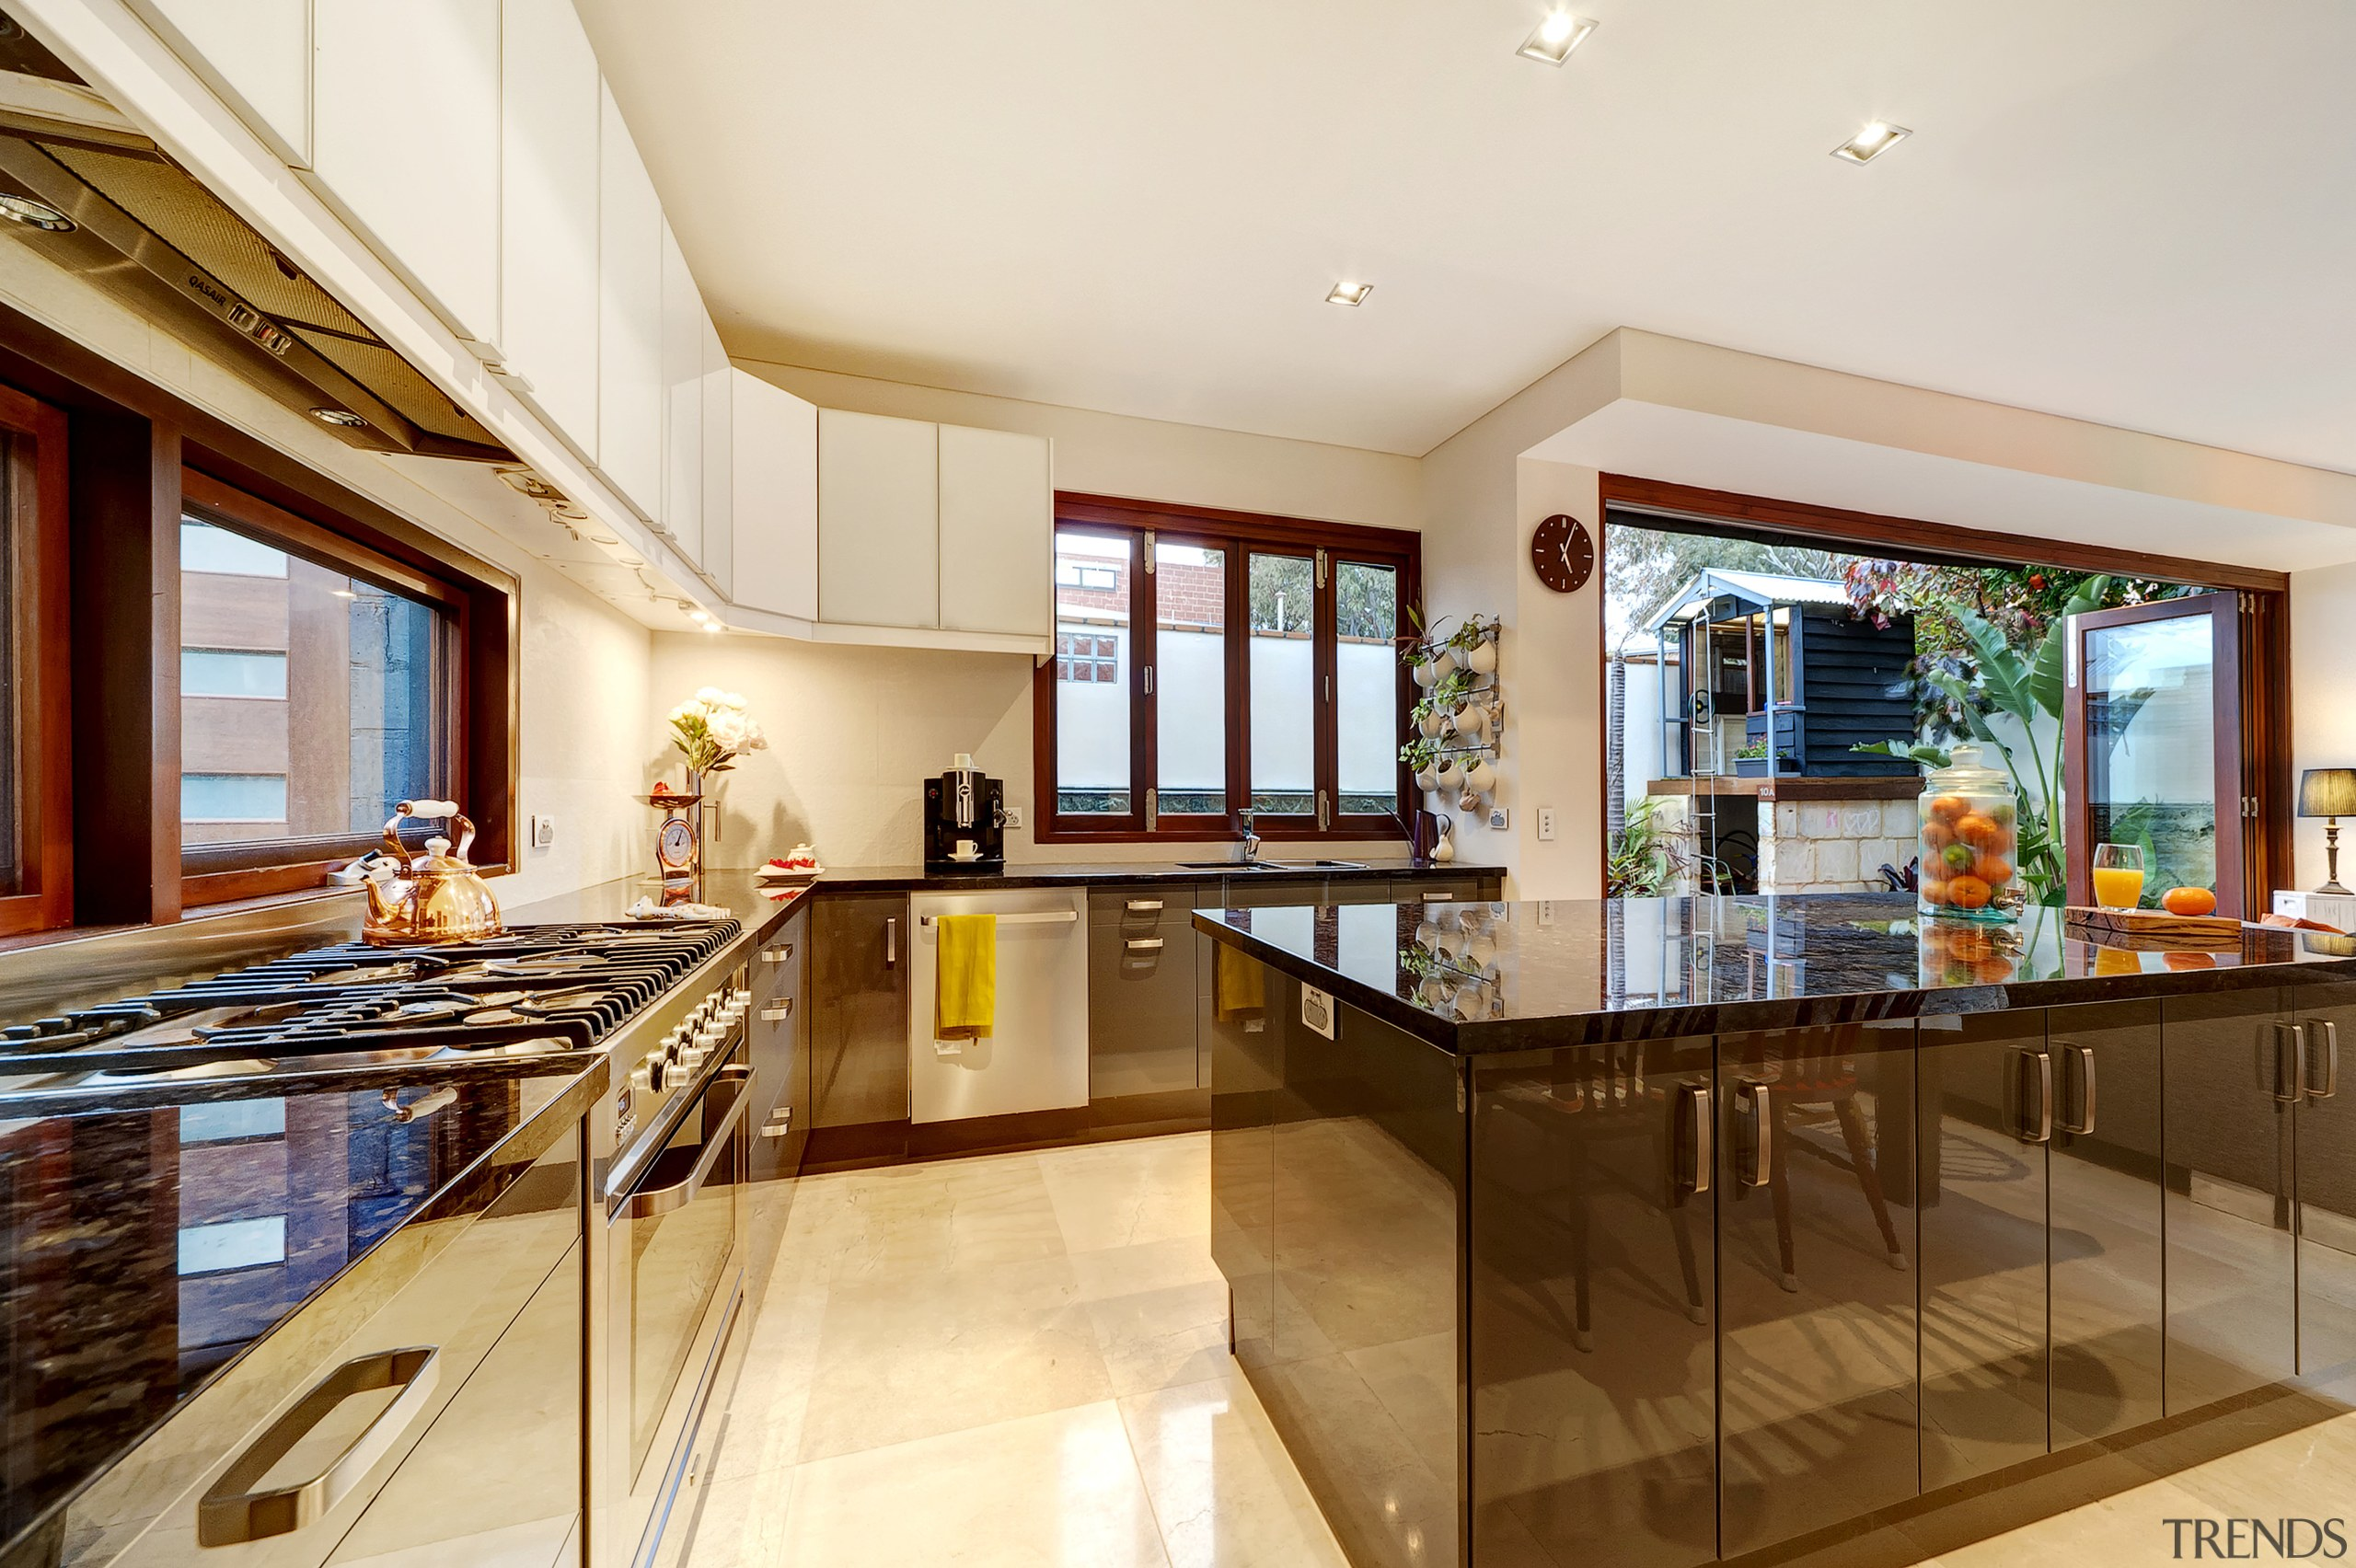 This kitchen wraps around two walls and includes ceiling, countertop, estate, home, interior design, kitchen, property, real estate, white